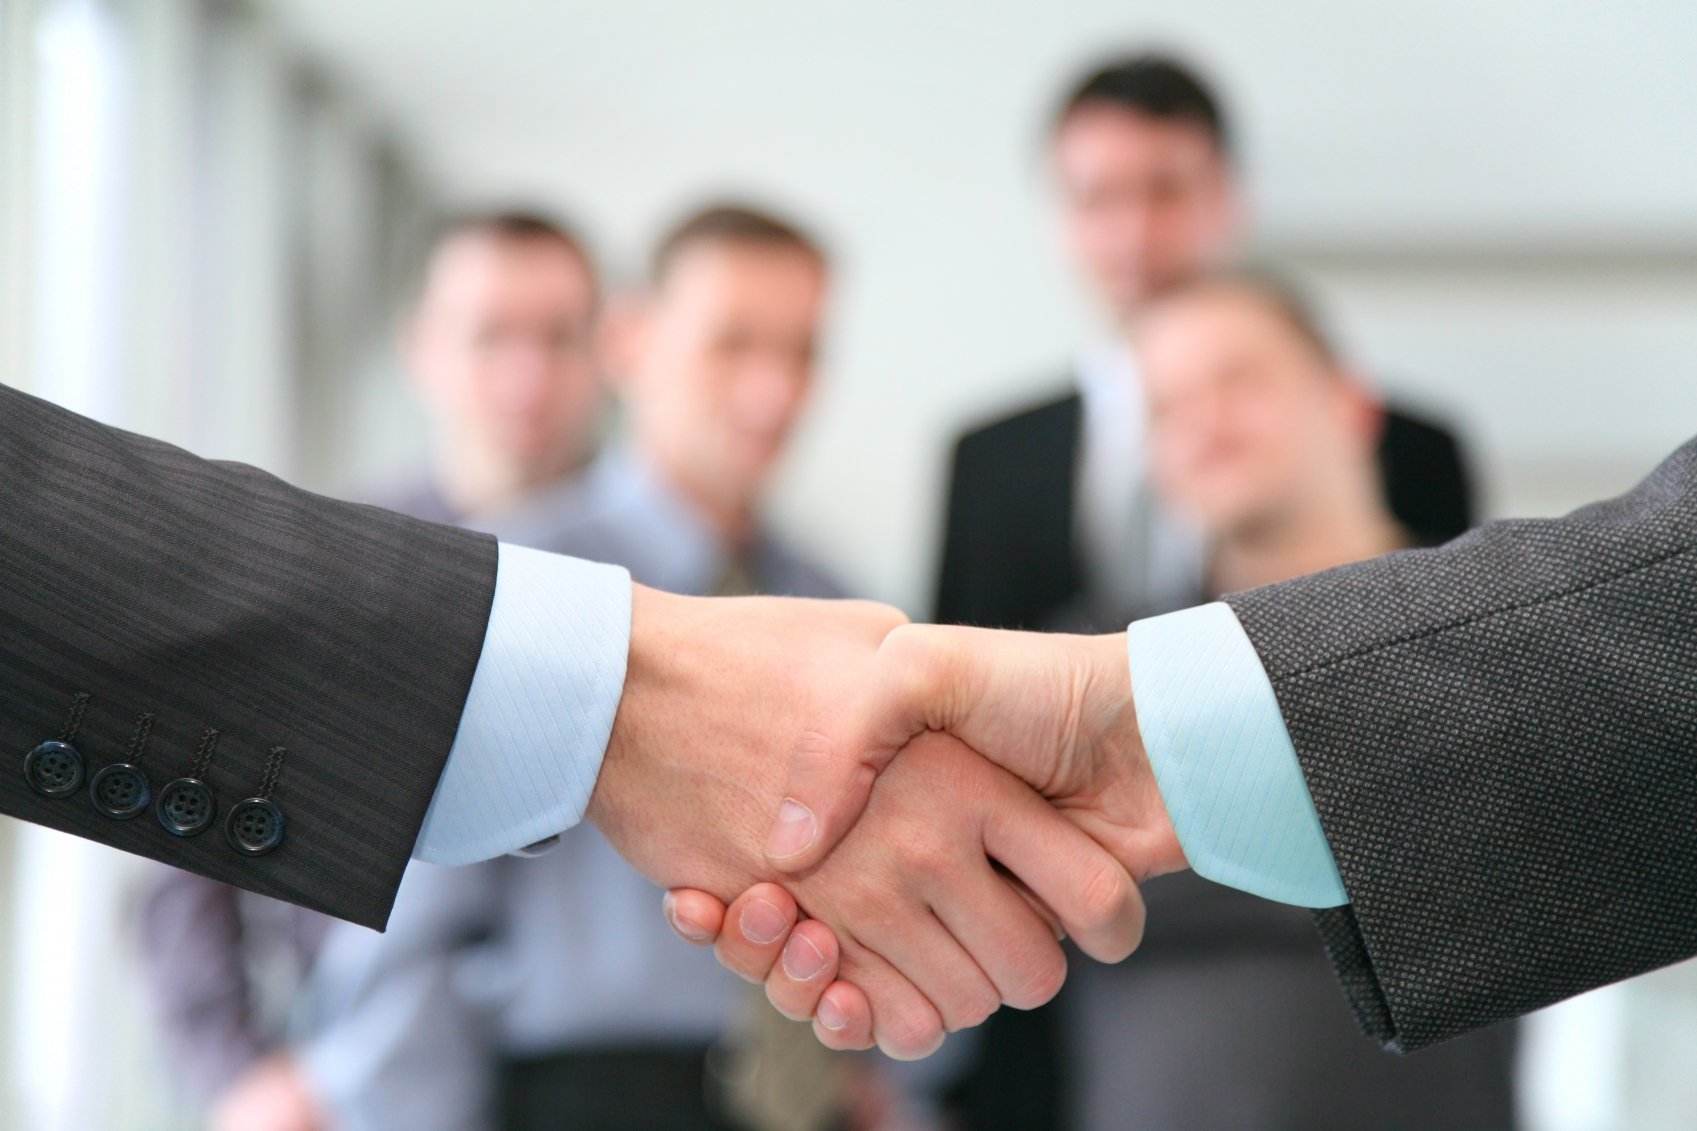 Company Representative Agreement 7 Steps To Write A Sales Representative Agreement For Legal Protection